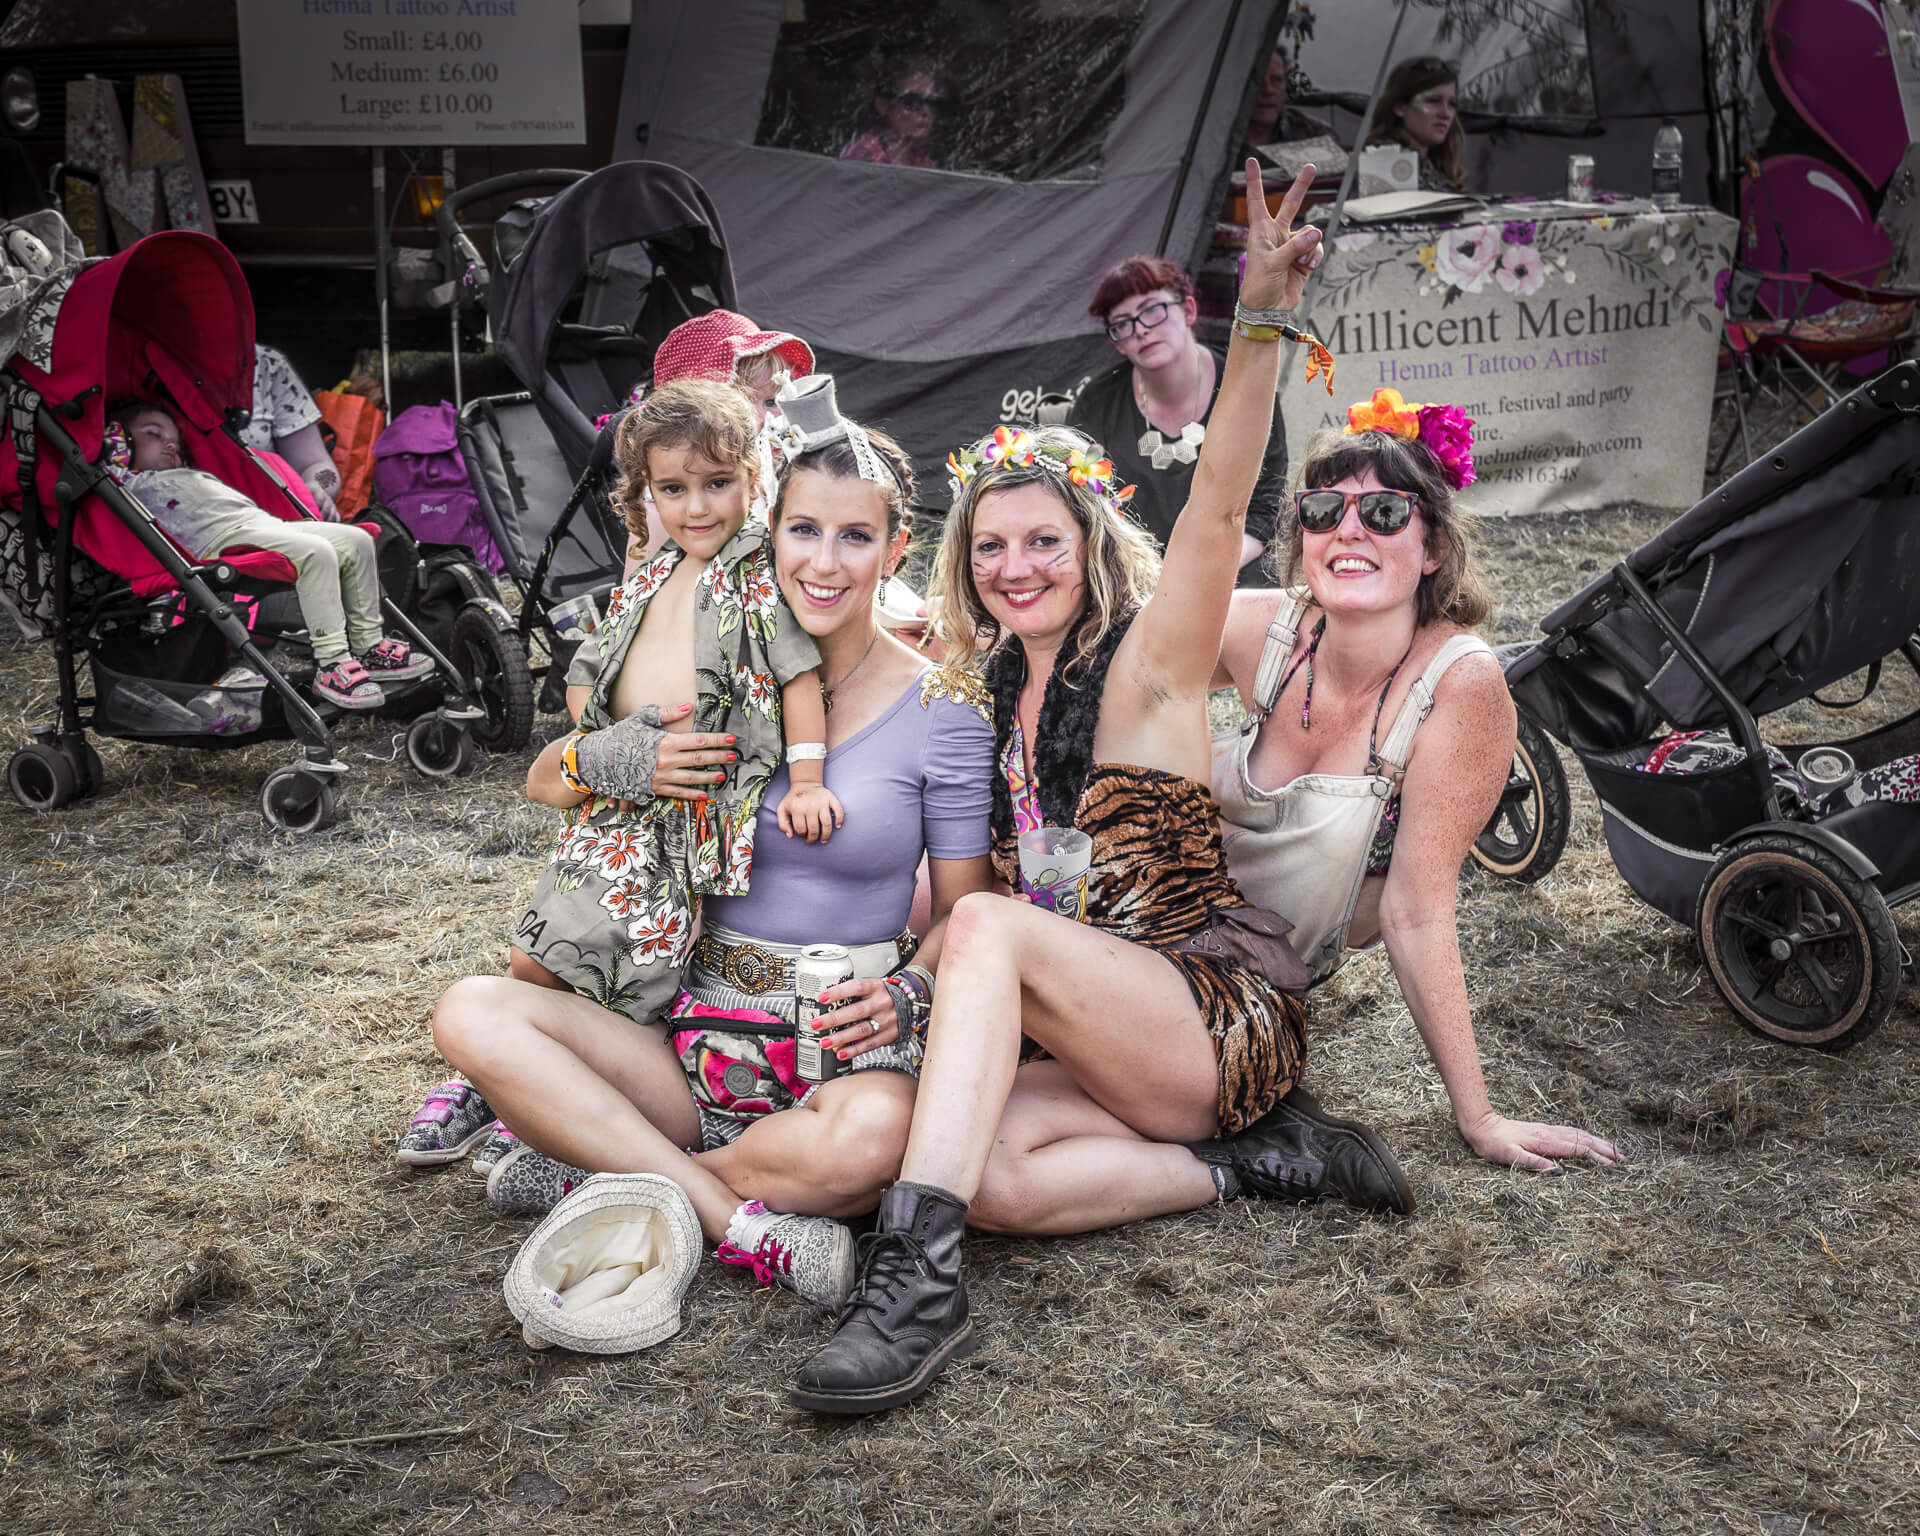 A subdued colour image of 3 female friends sat together, along with the young daughter of one of them, on the ground in front of the henna tattoo parlour at Nozstock in 2018. They all smiley broadly for the camera as one raises her left arm making a 'Peace' sign.